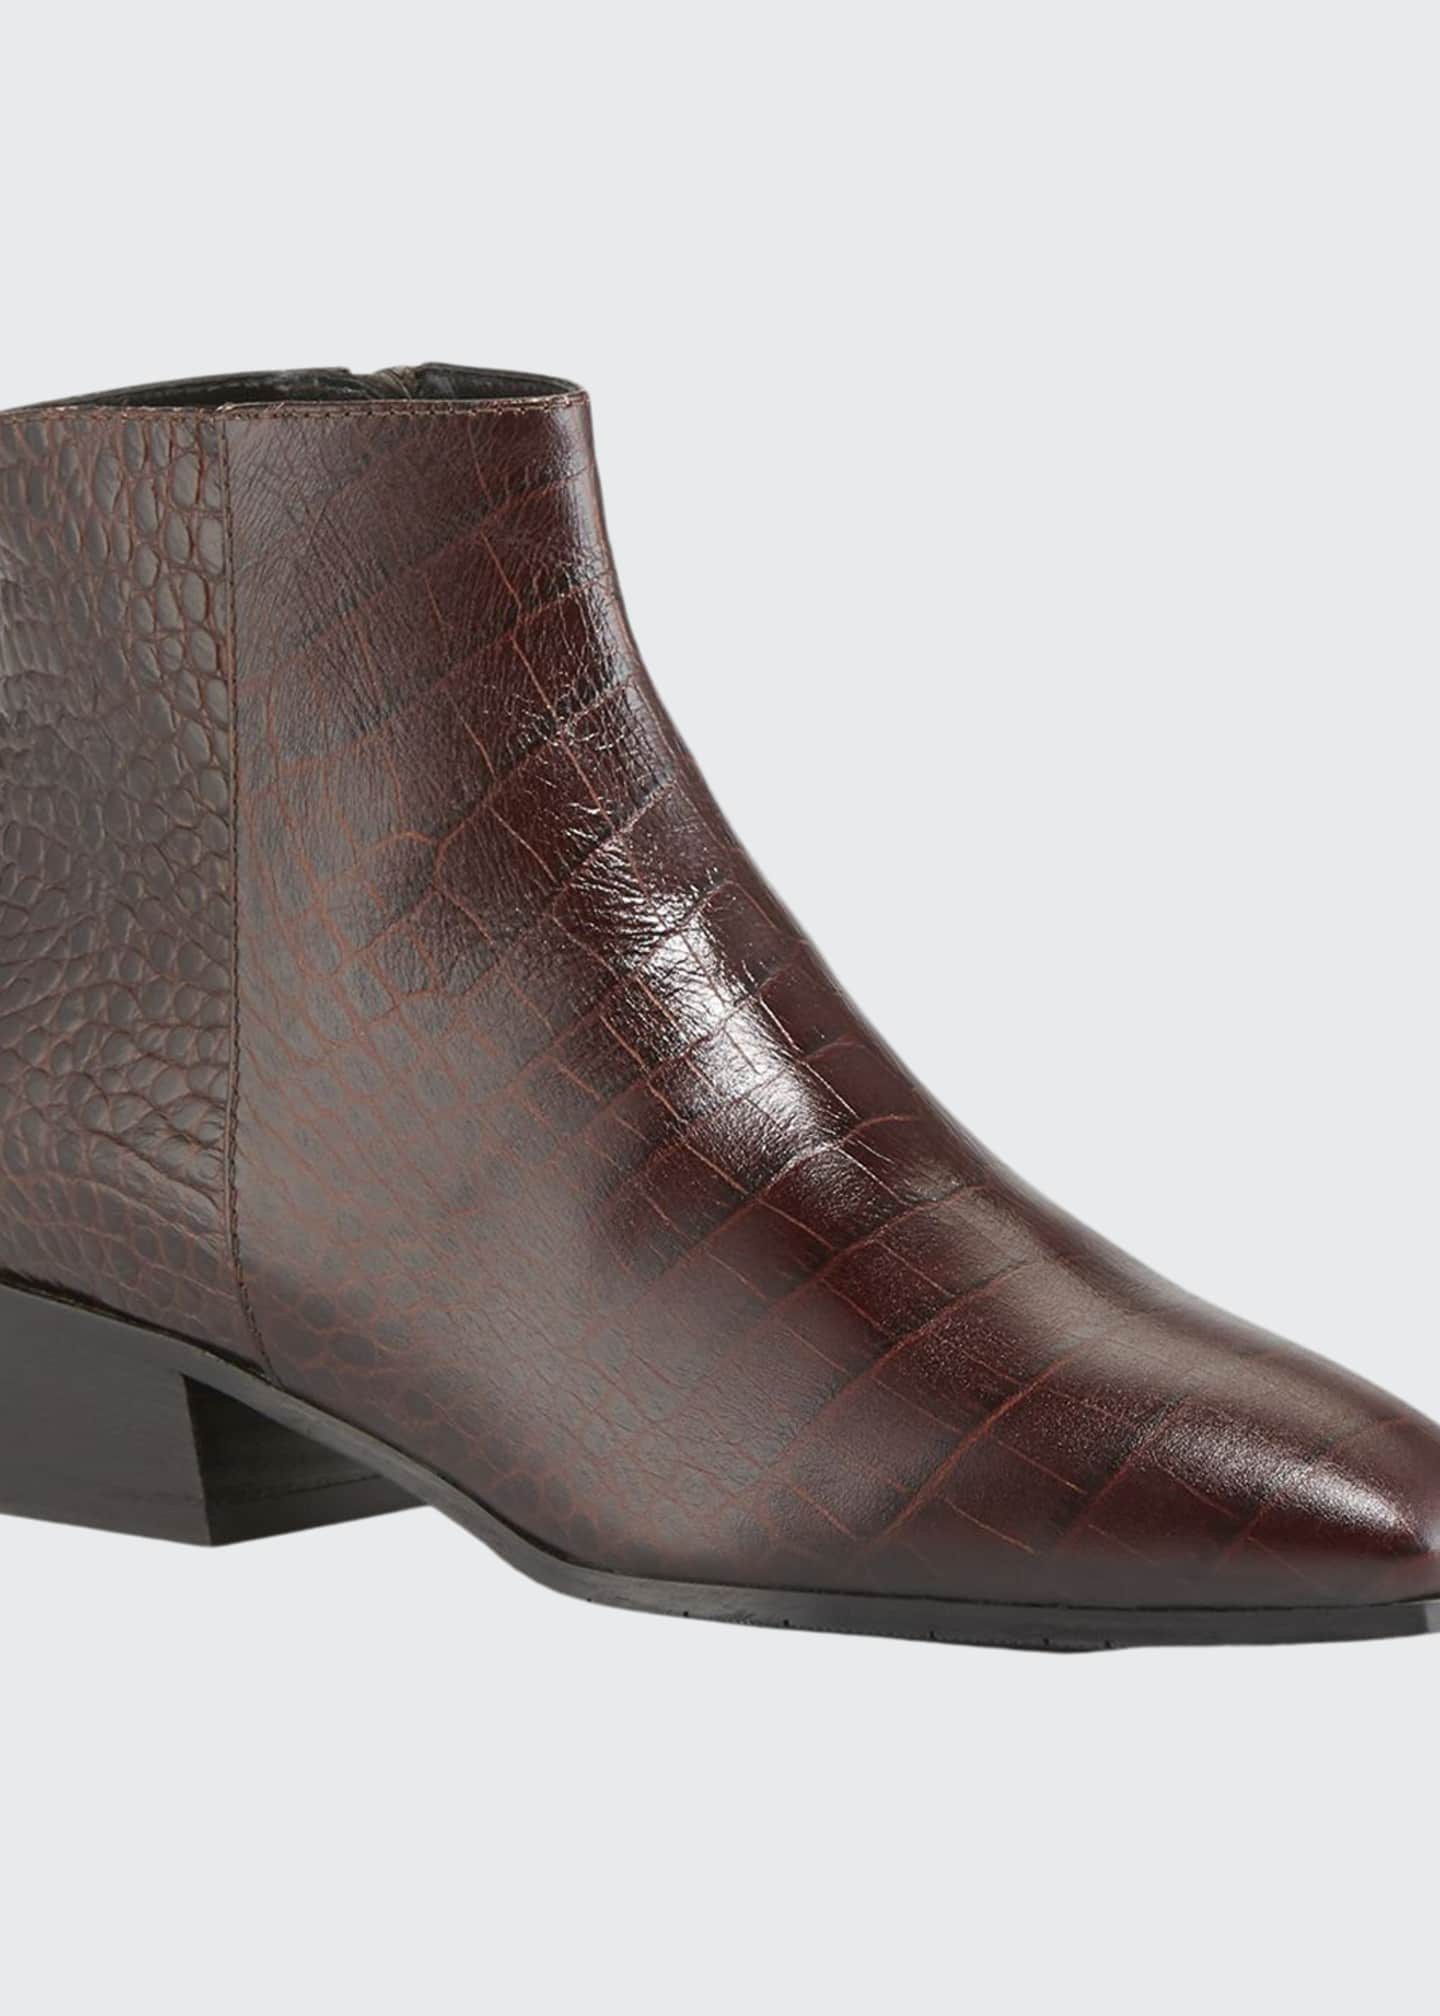 Aquatalia Fuoco Embossed Leather Booties